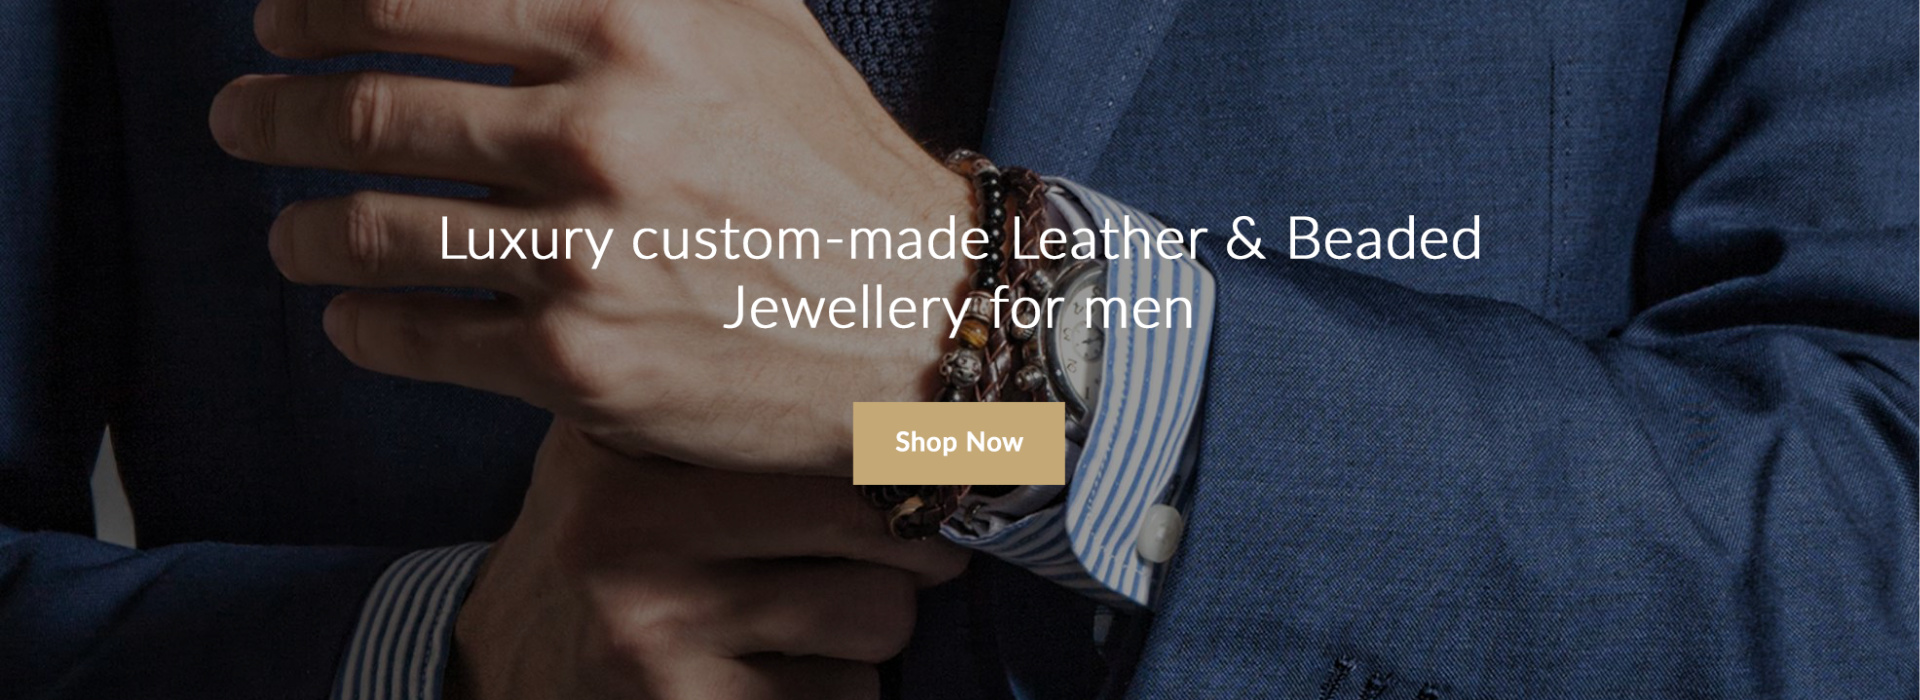 Luxury custom-made leather & beaded jewellery for men